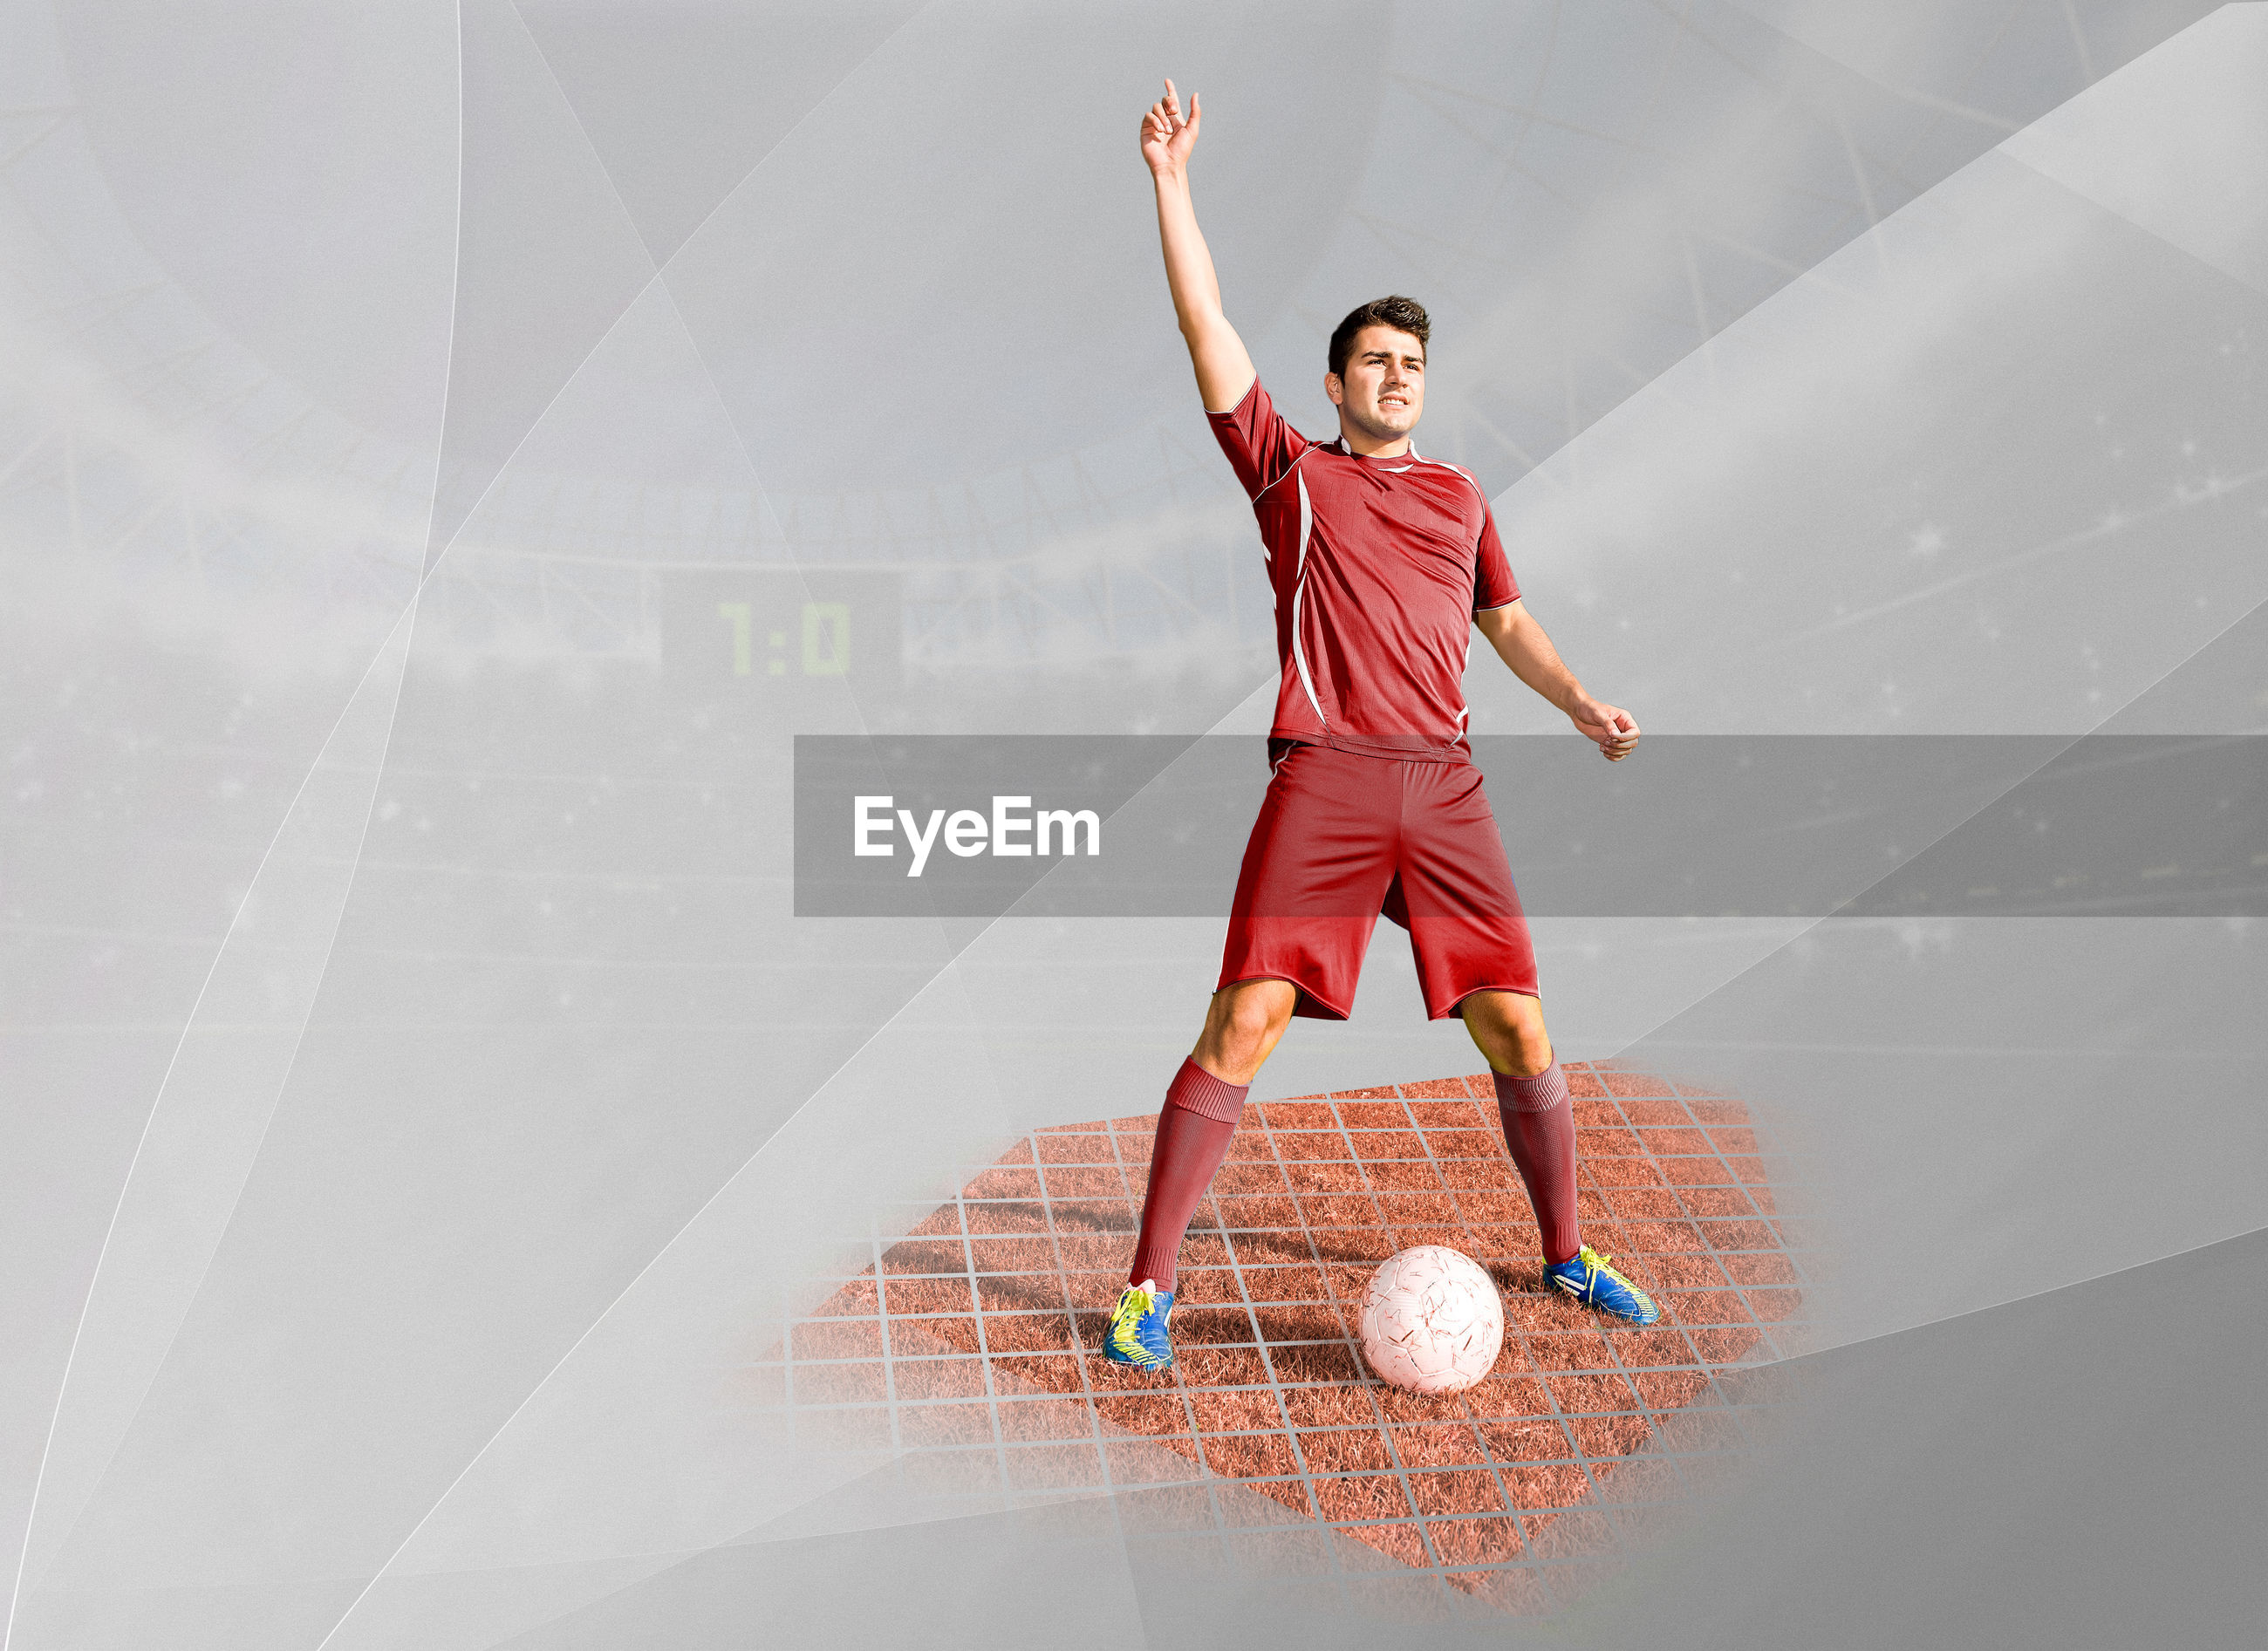 Digital composite image of soccer player with ball standing in stadium